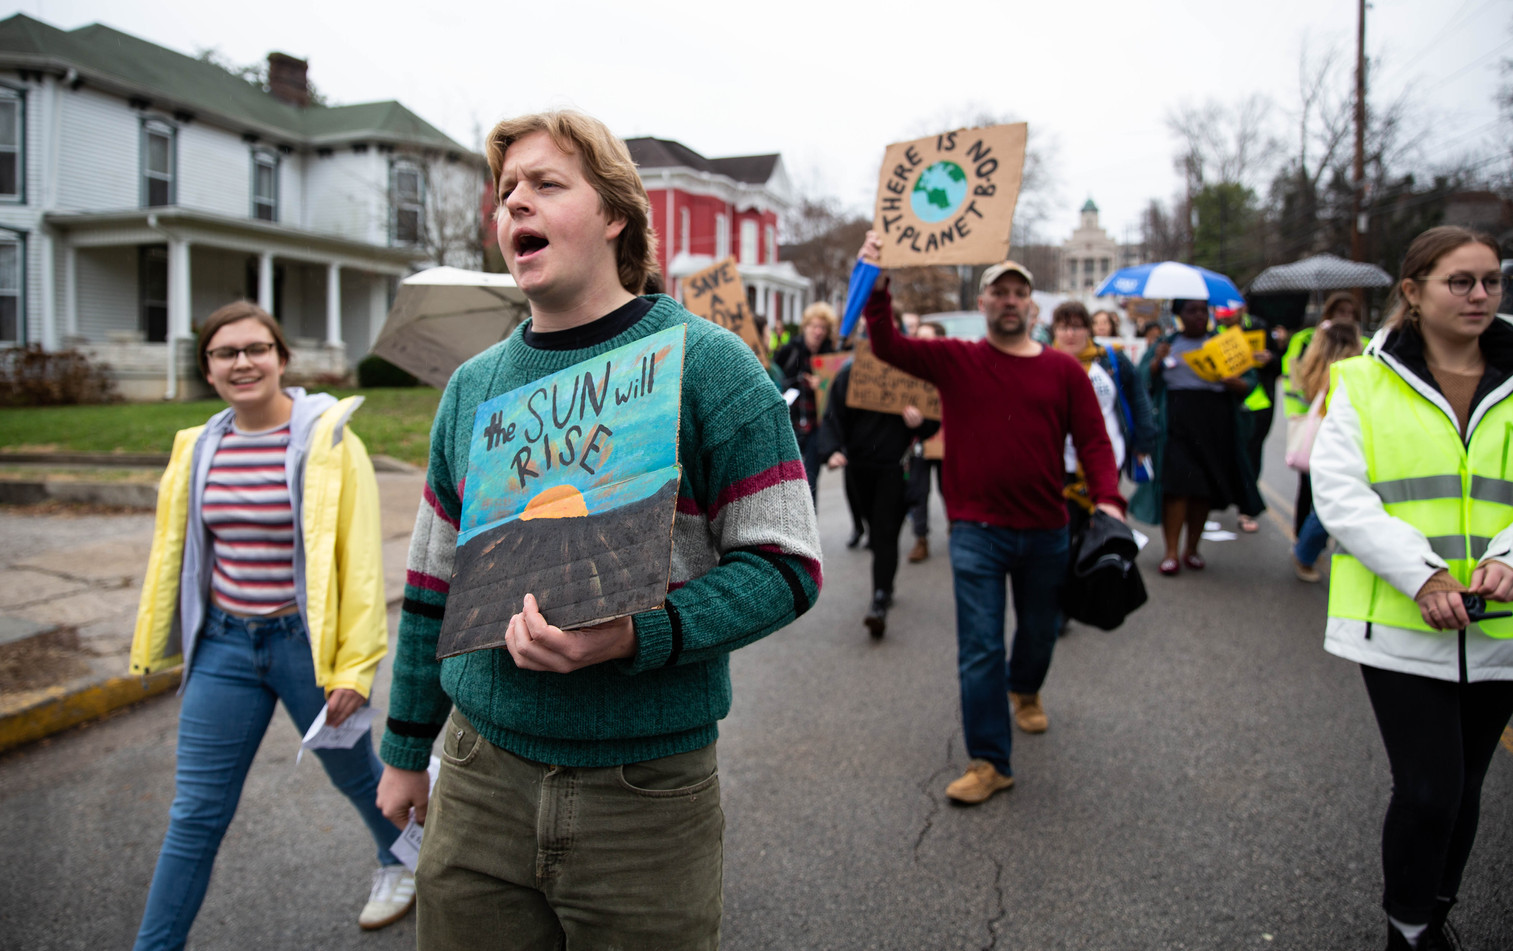 The Sunrise Movement Climate Strike March for clean jobs and a livable future was held on Friday, Dec. 6, 2019, starting at Western Kentucky University's Cherry Hall and ending with a rally at the Warren County Justice Center. ©2019 Grace Ramey